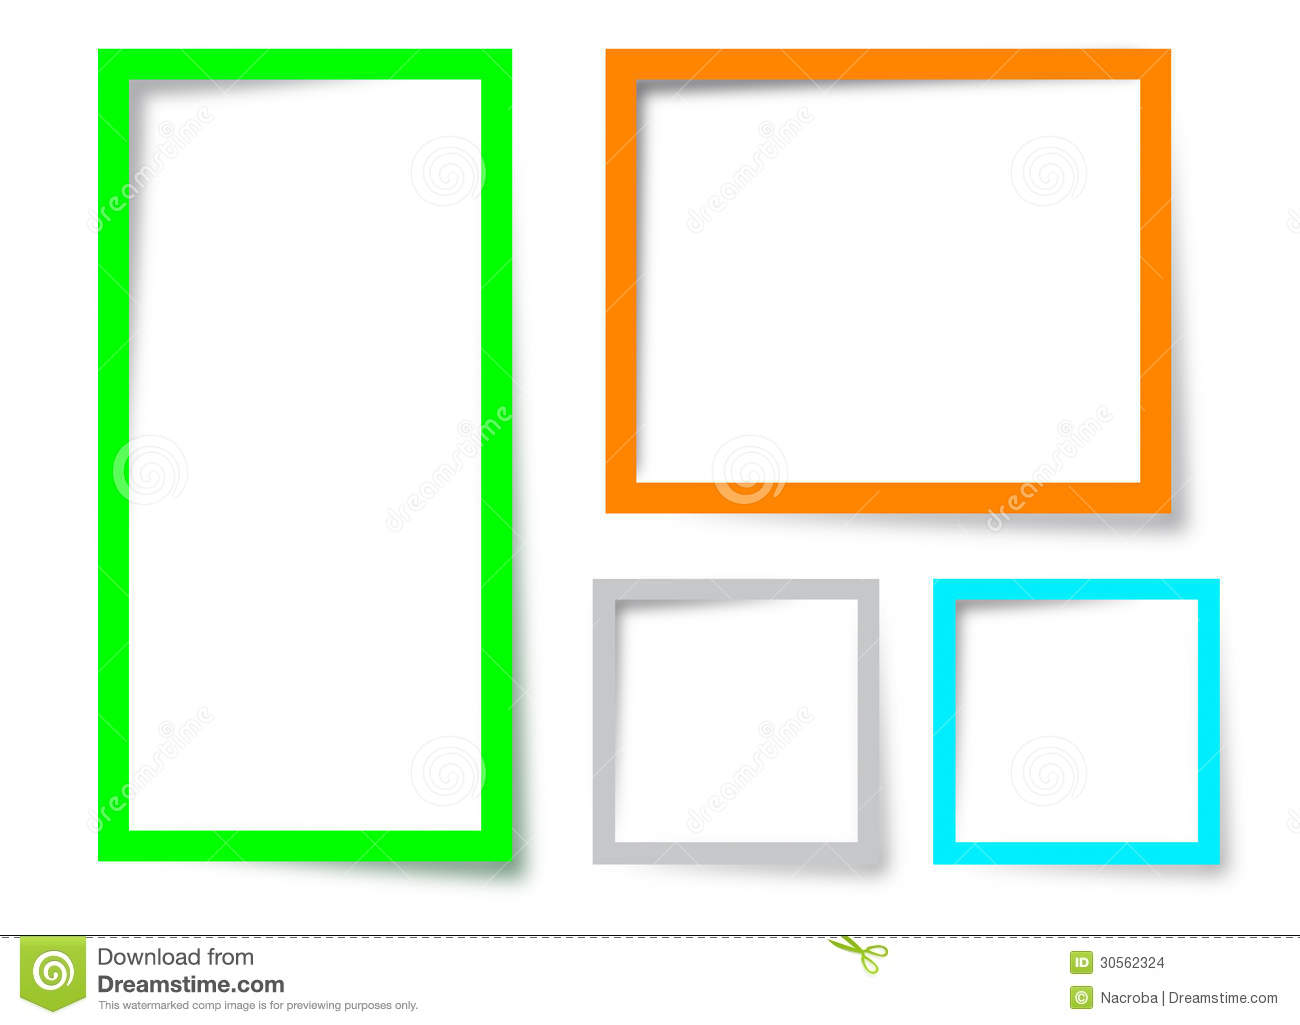 Text box design stock illustration. Image of label, frame ...